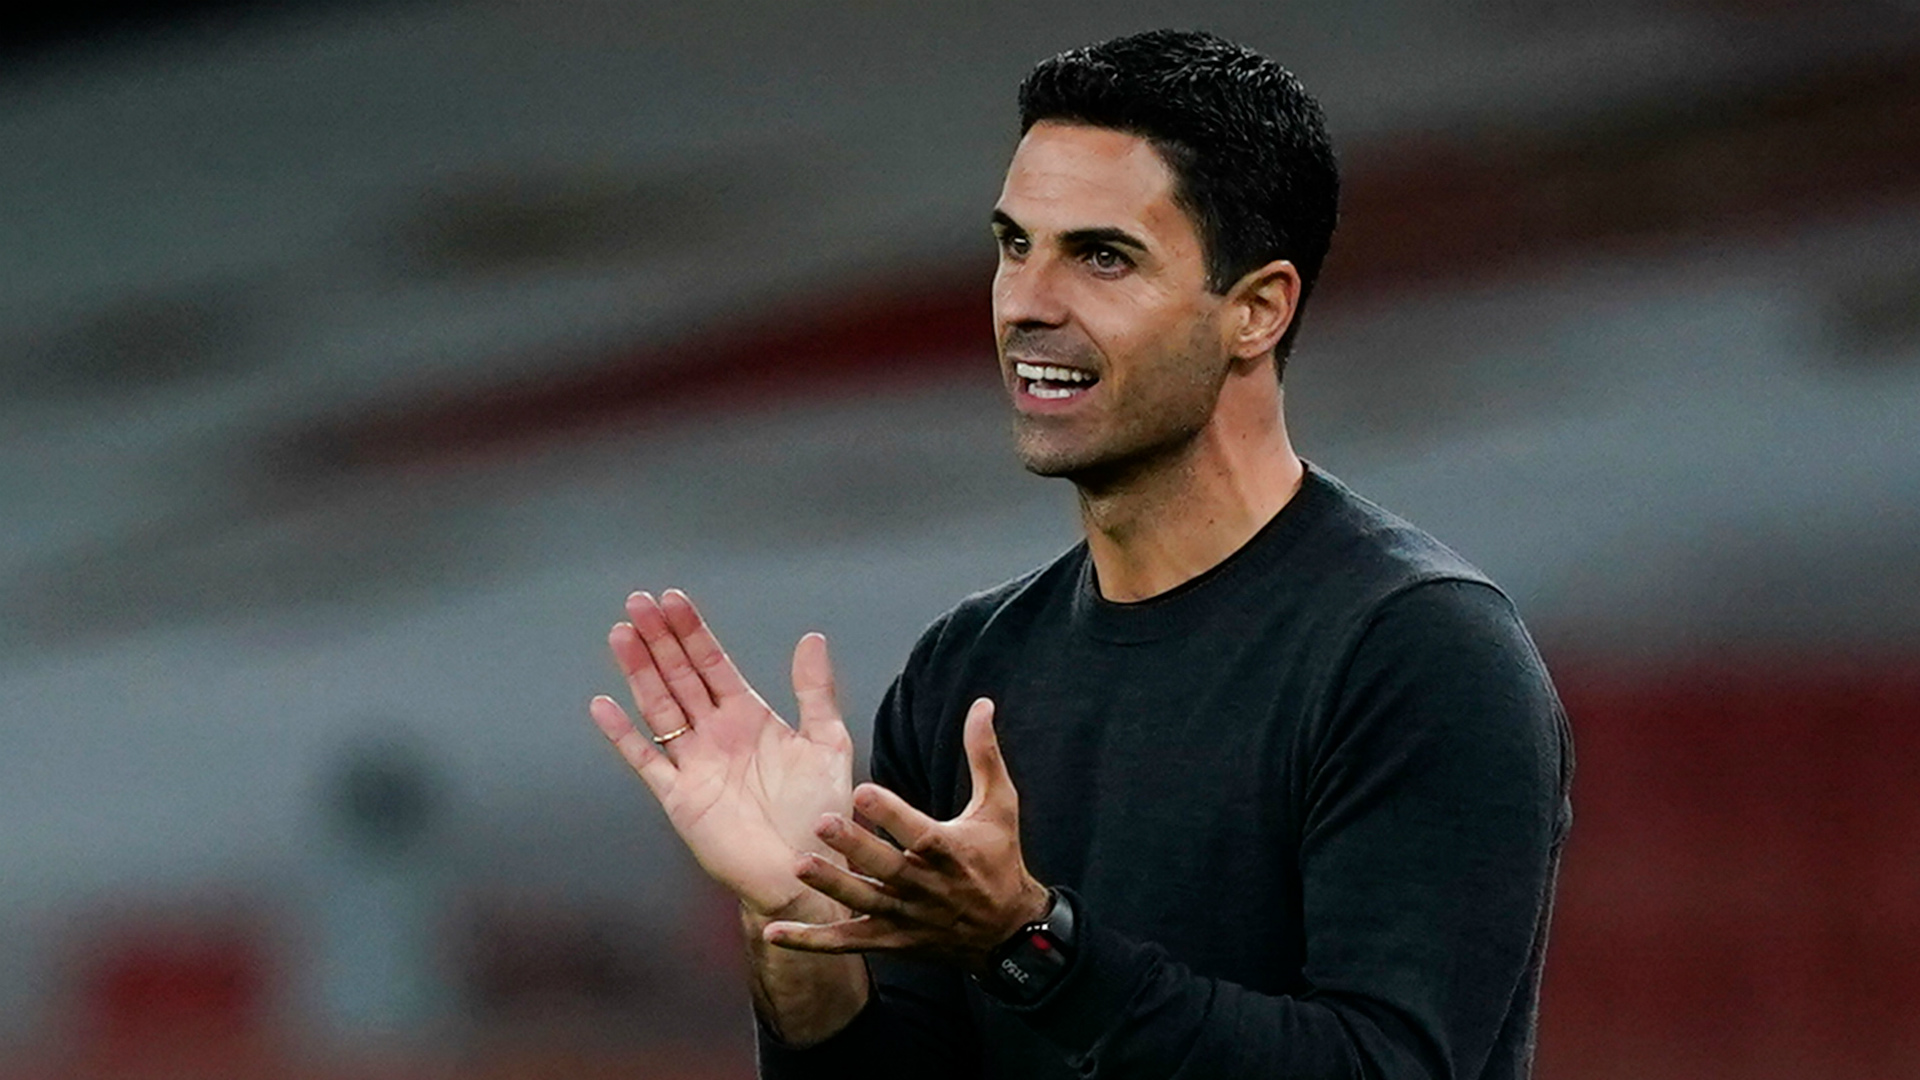 Arsenal chiefs urged to be 'calm' as Arteta searches for winning formula